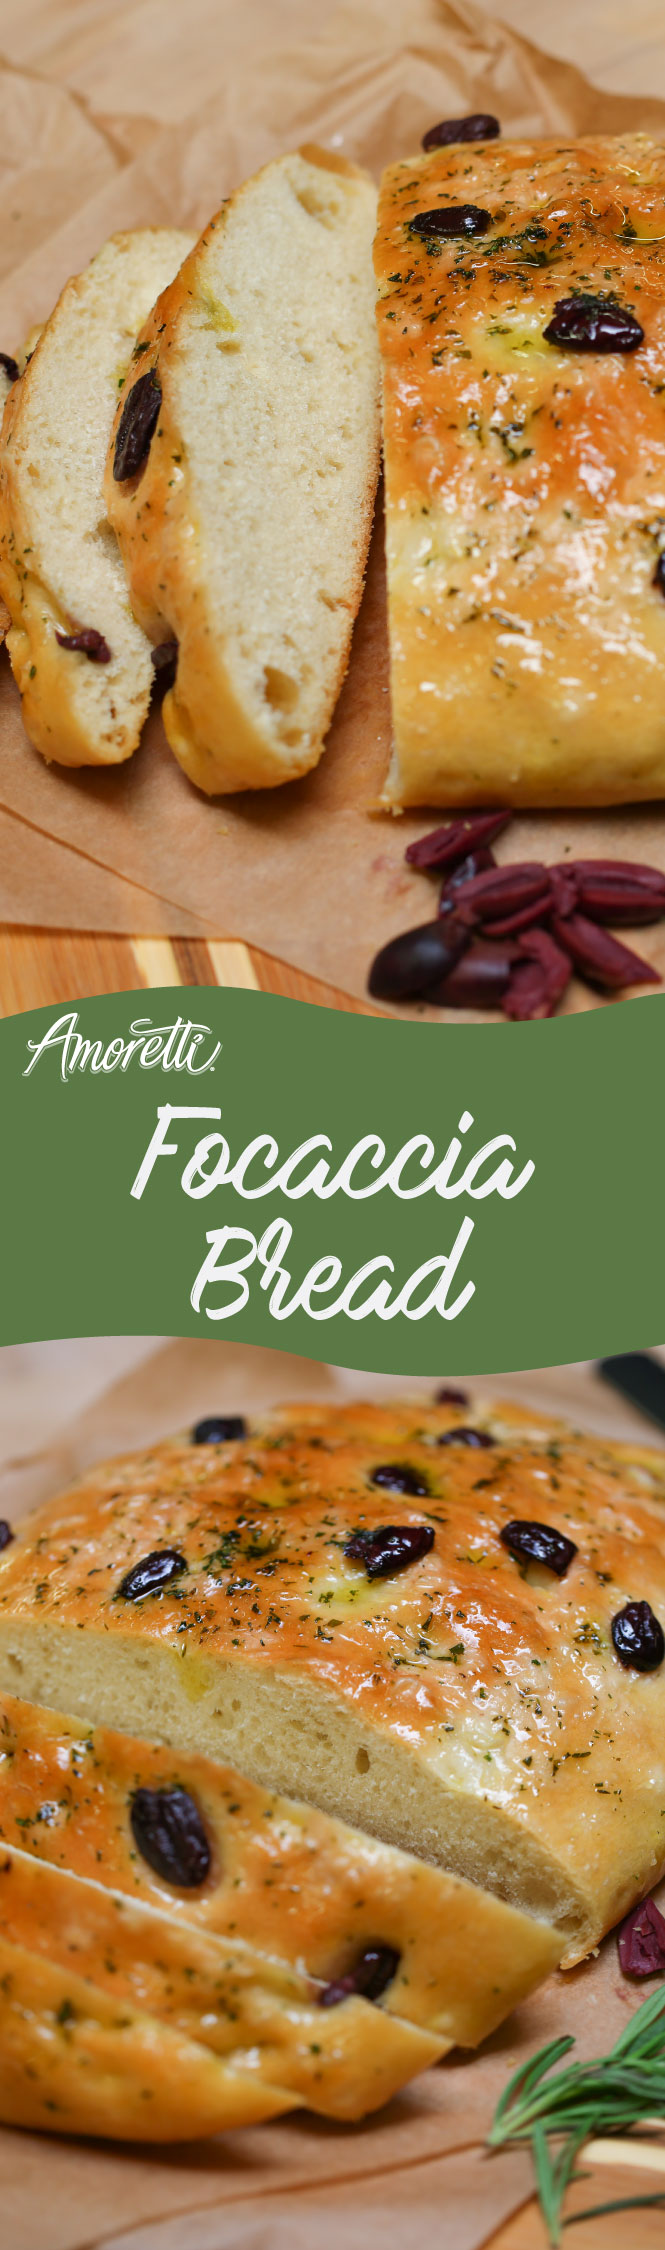 Make dinner a bit more special with this savory focaccia bread!